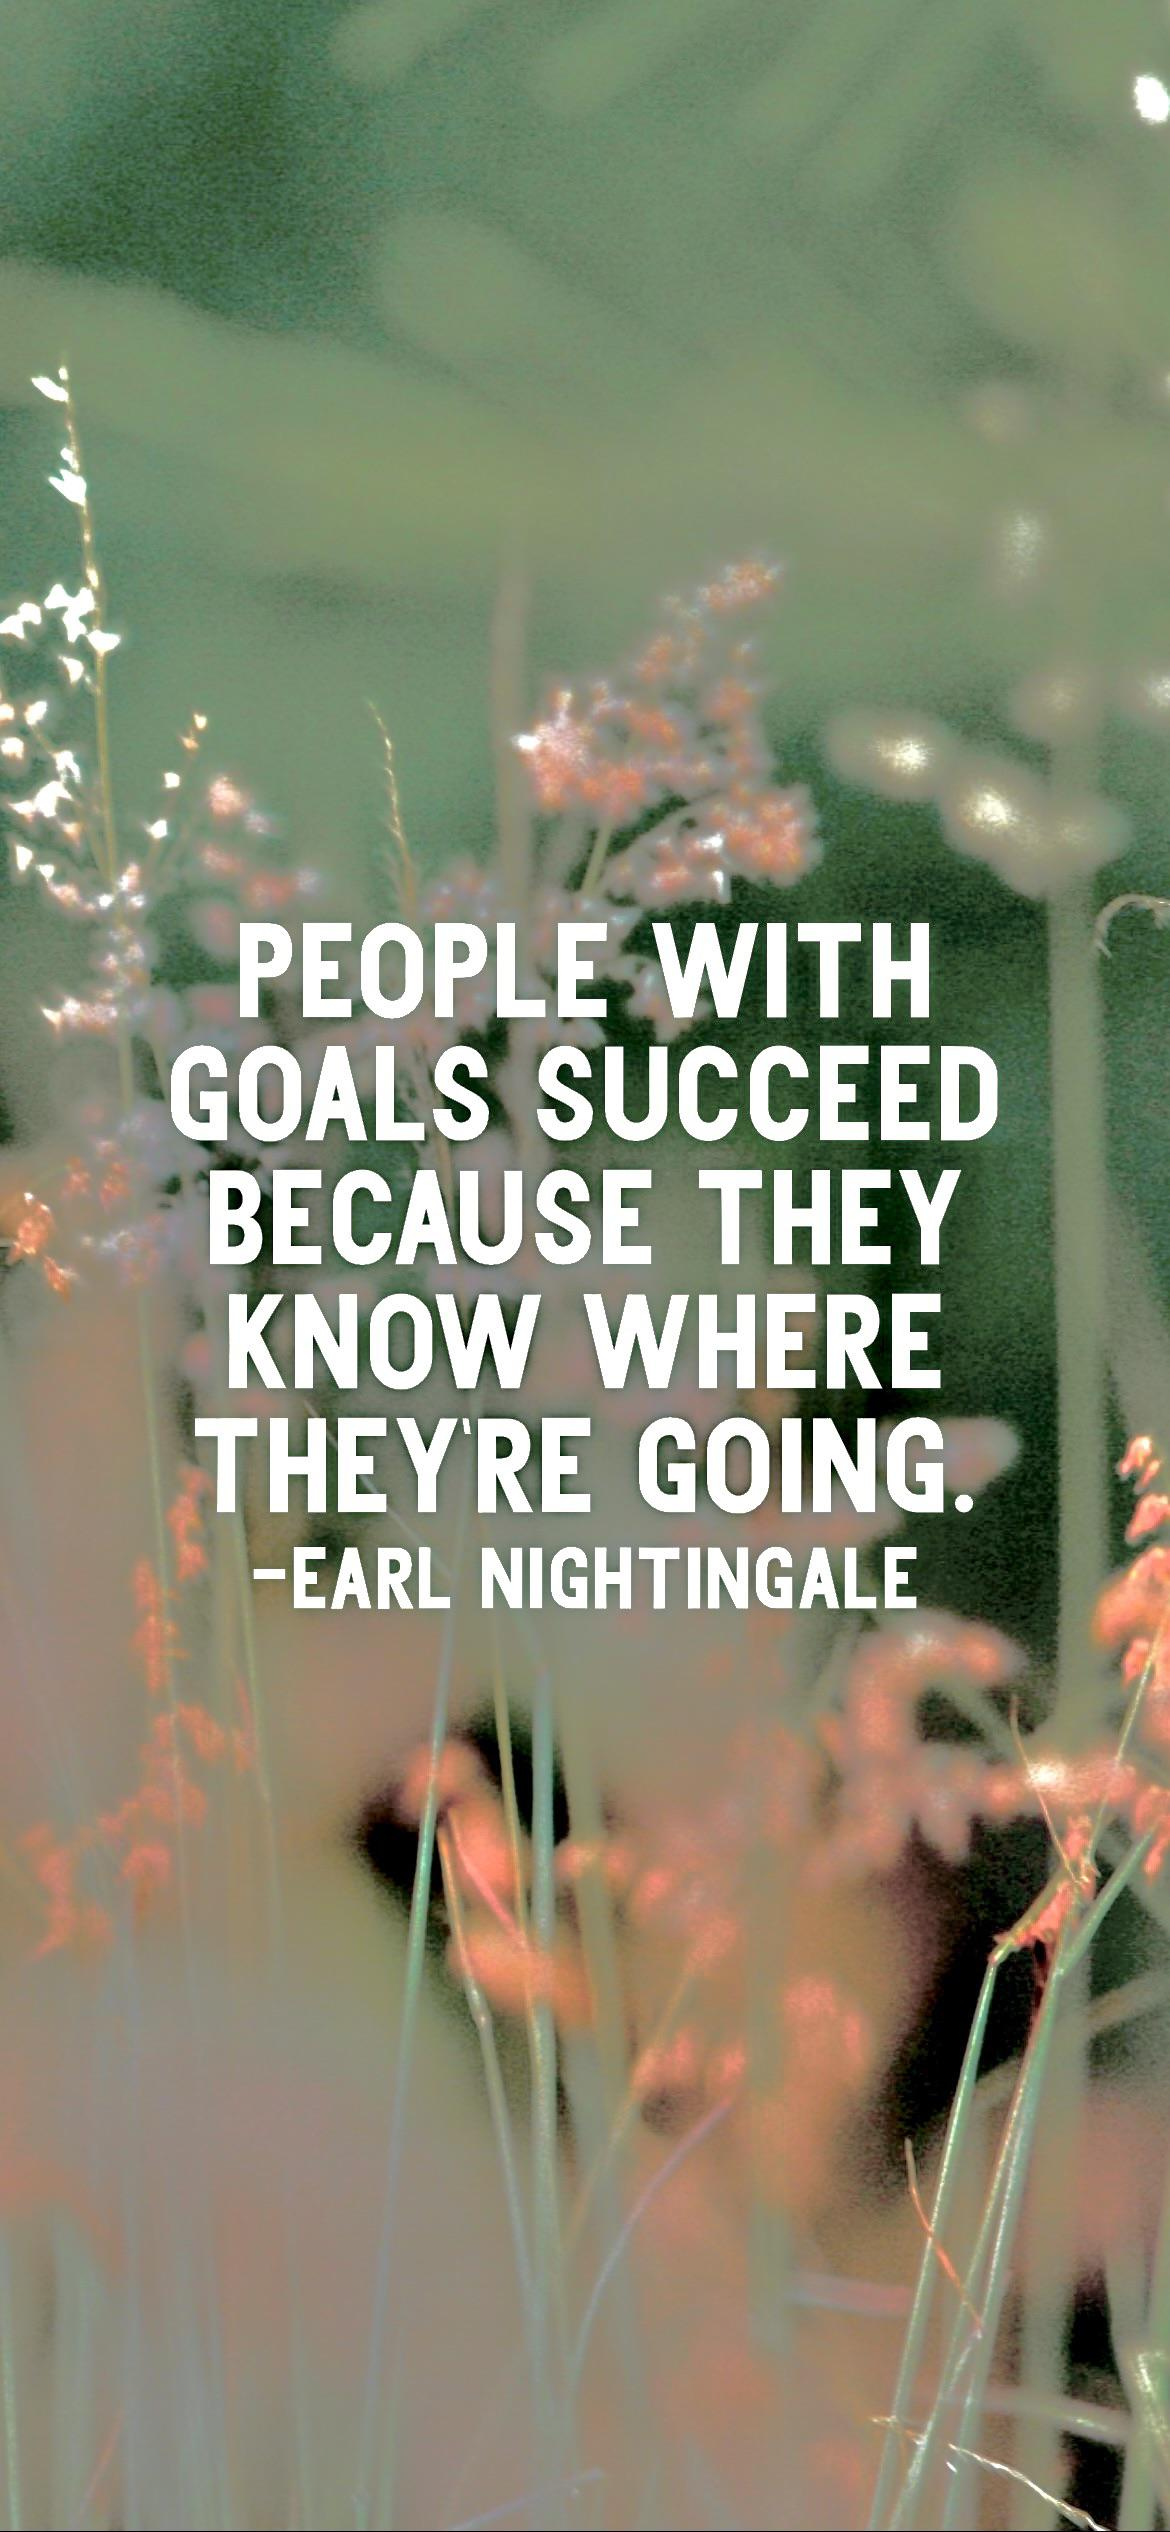 People with goals succeed because they know where they're going. -Earl Nightingale [2532 x 1170p]